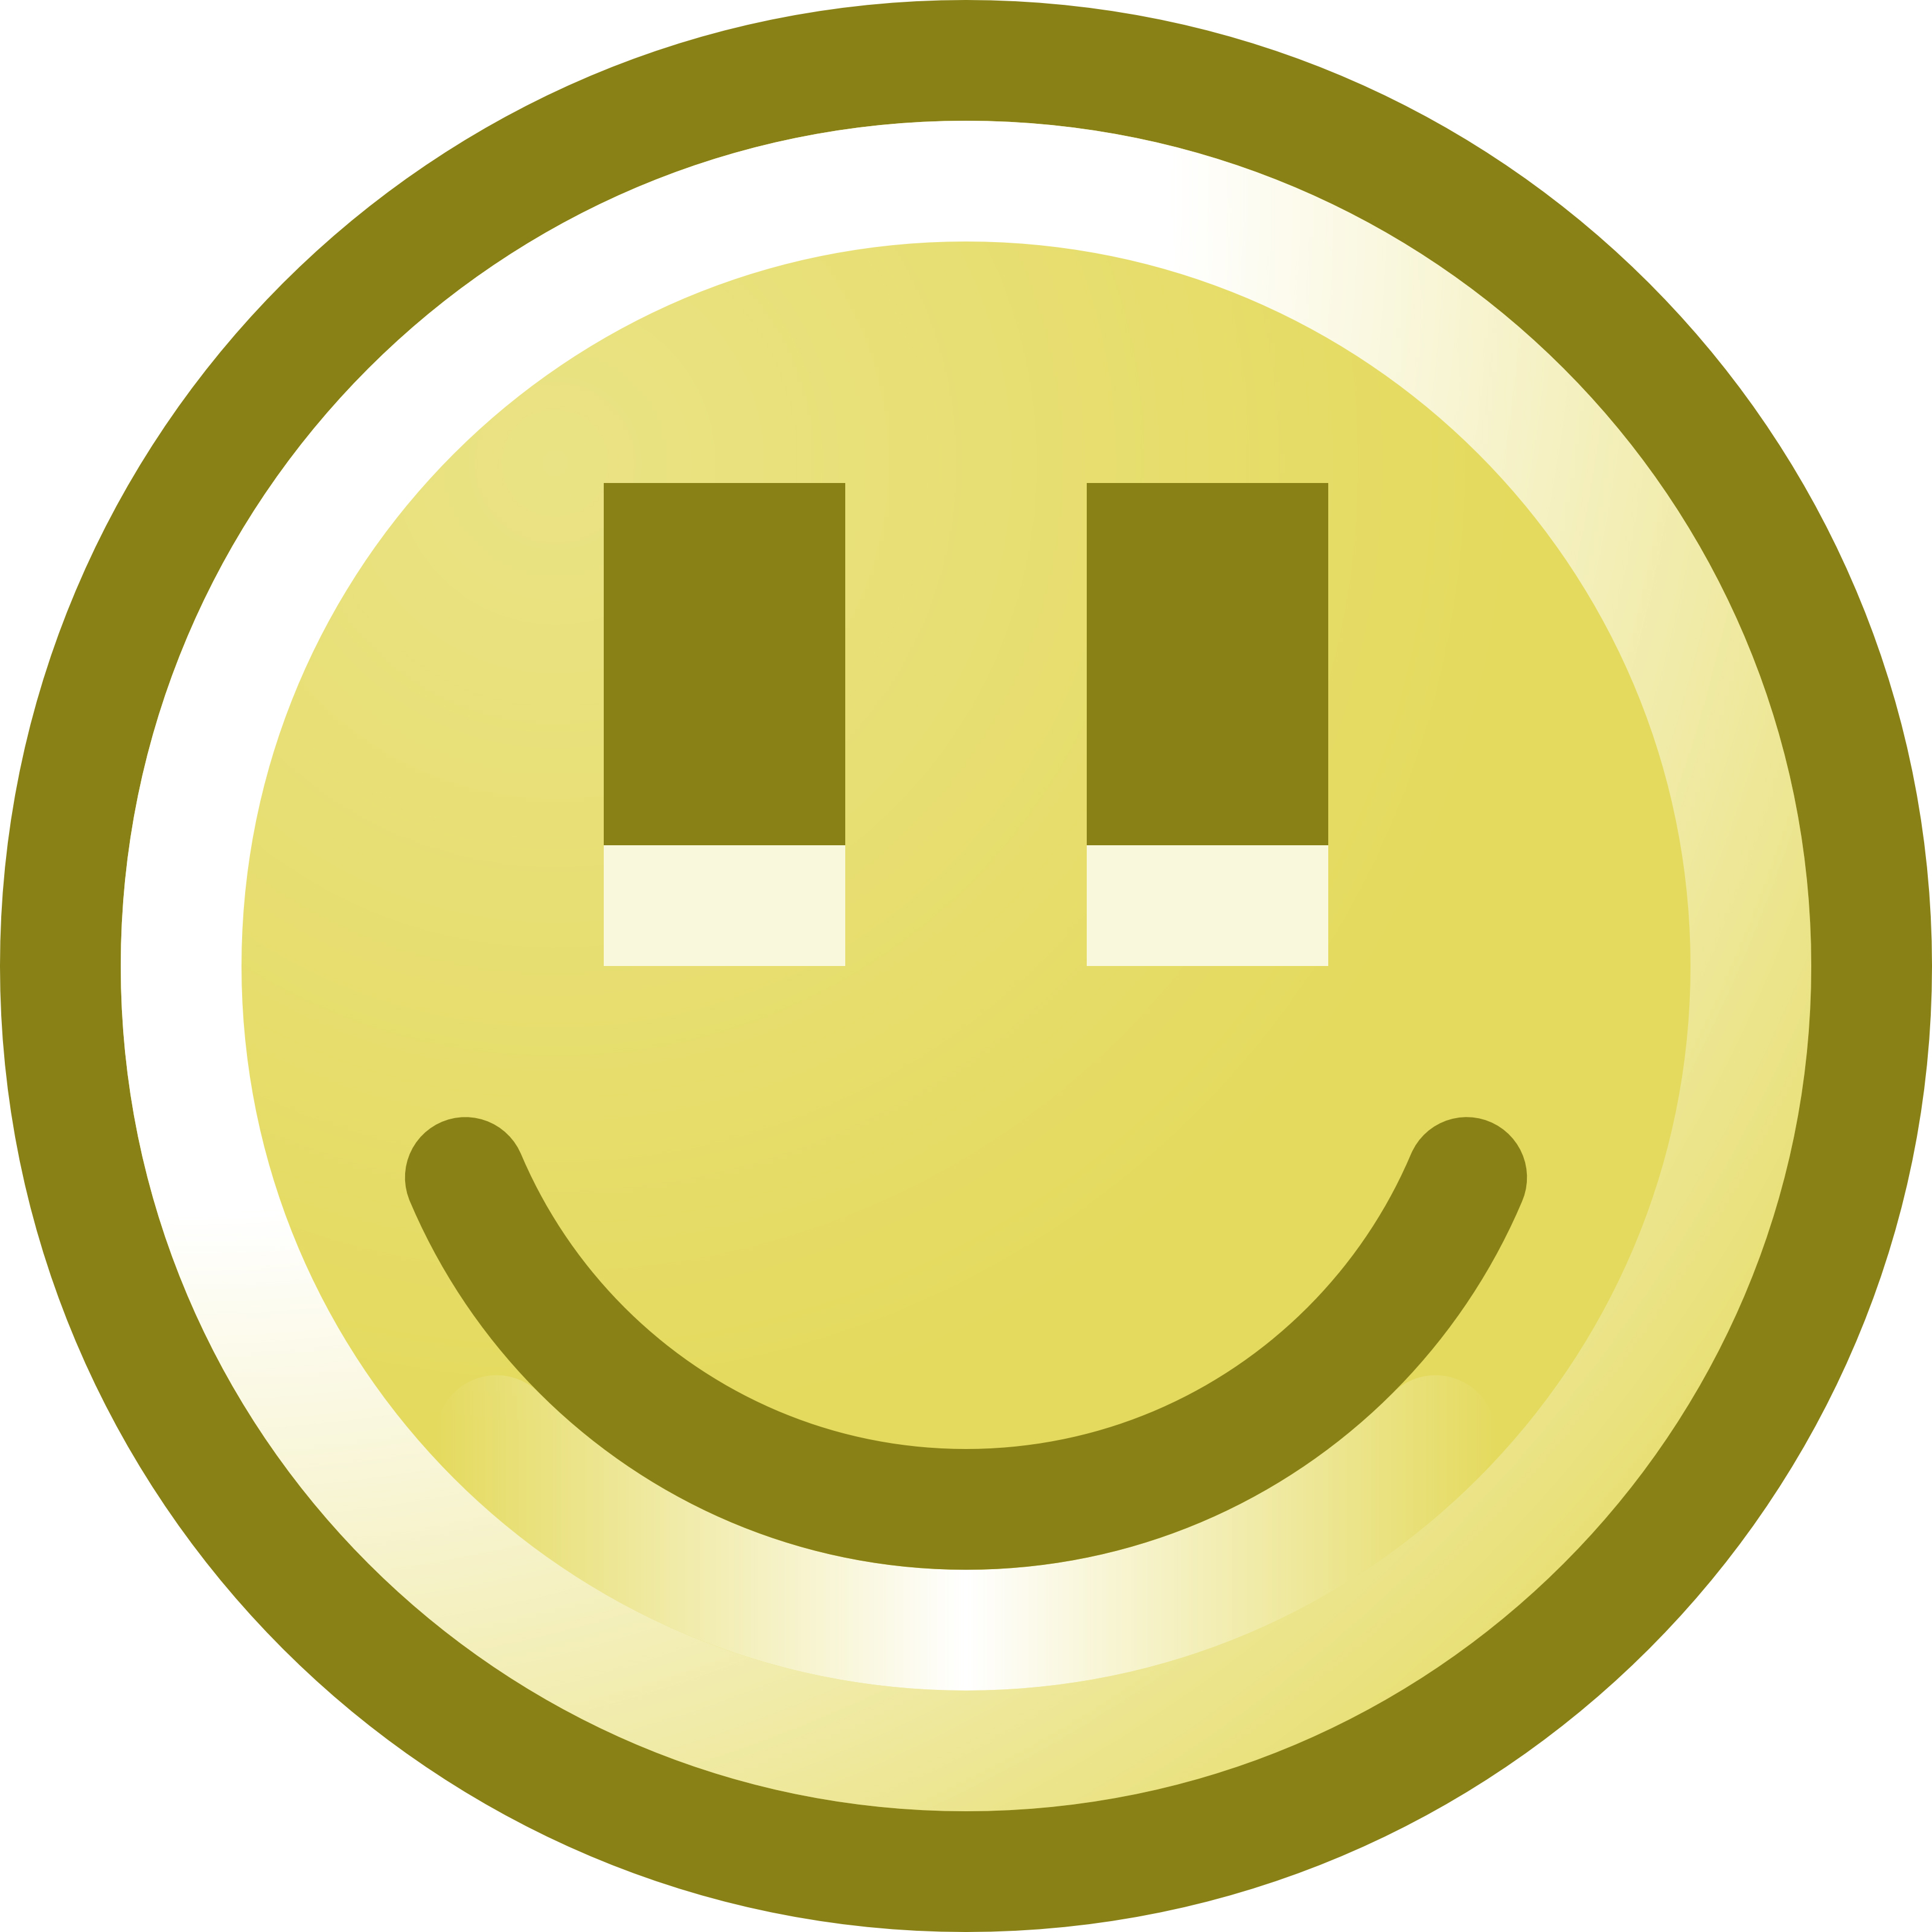 3200x3200 Smile Clipart